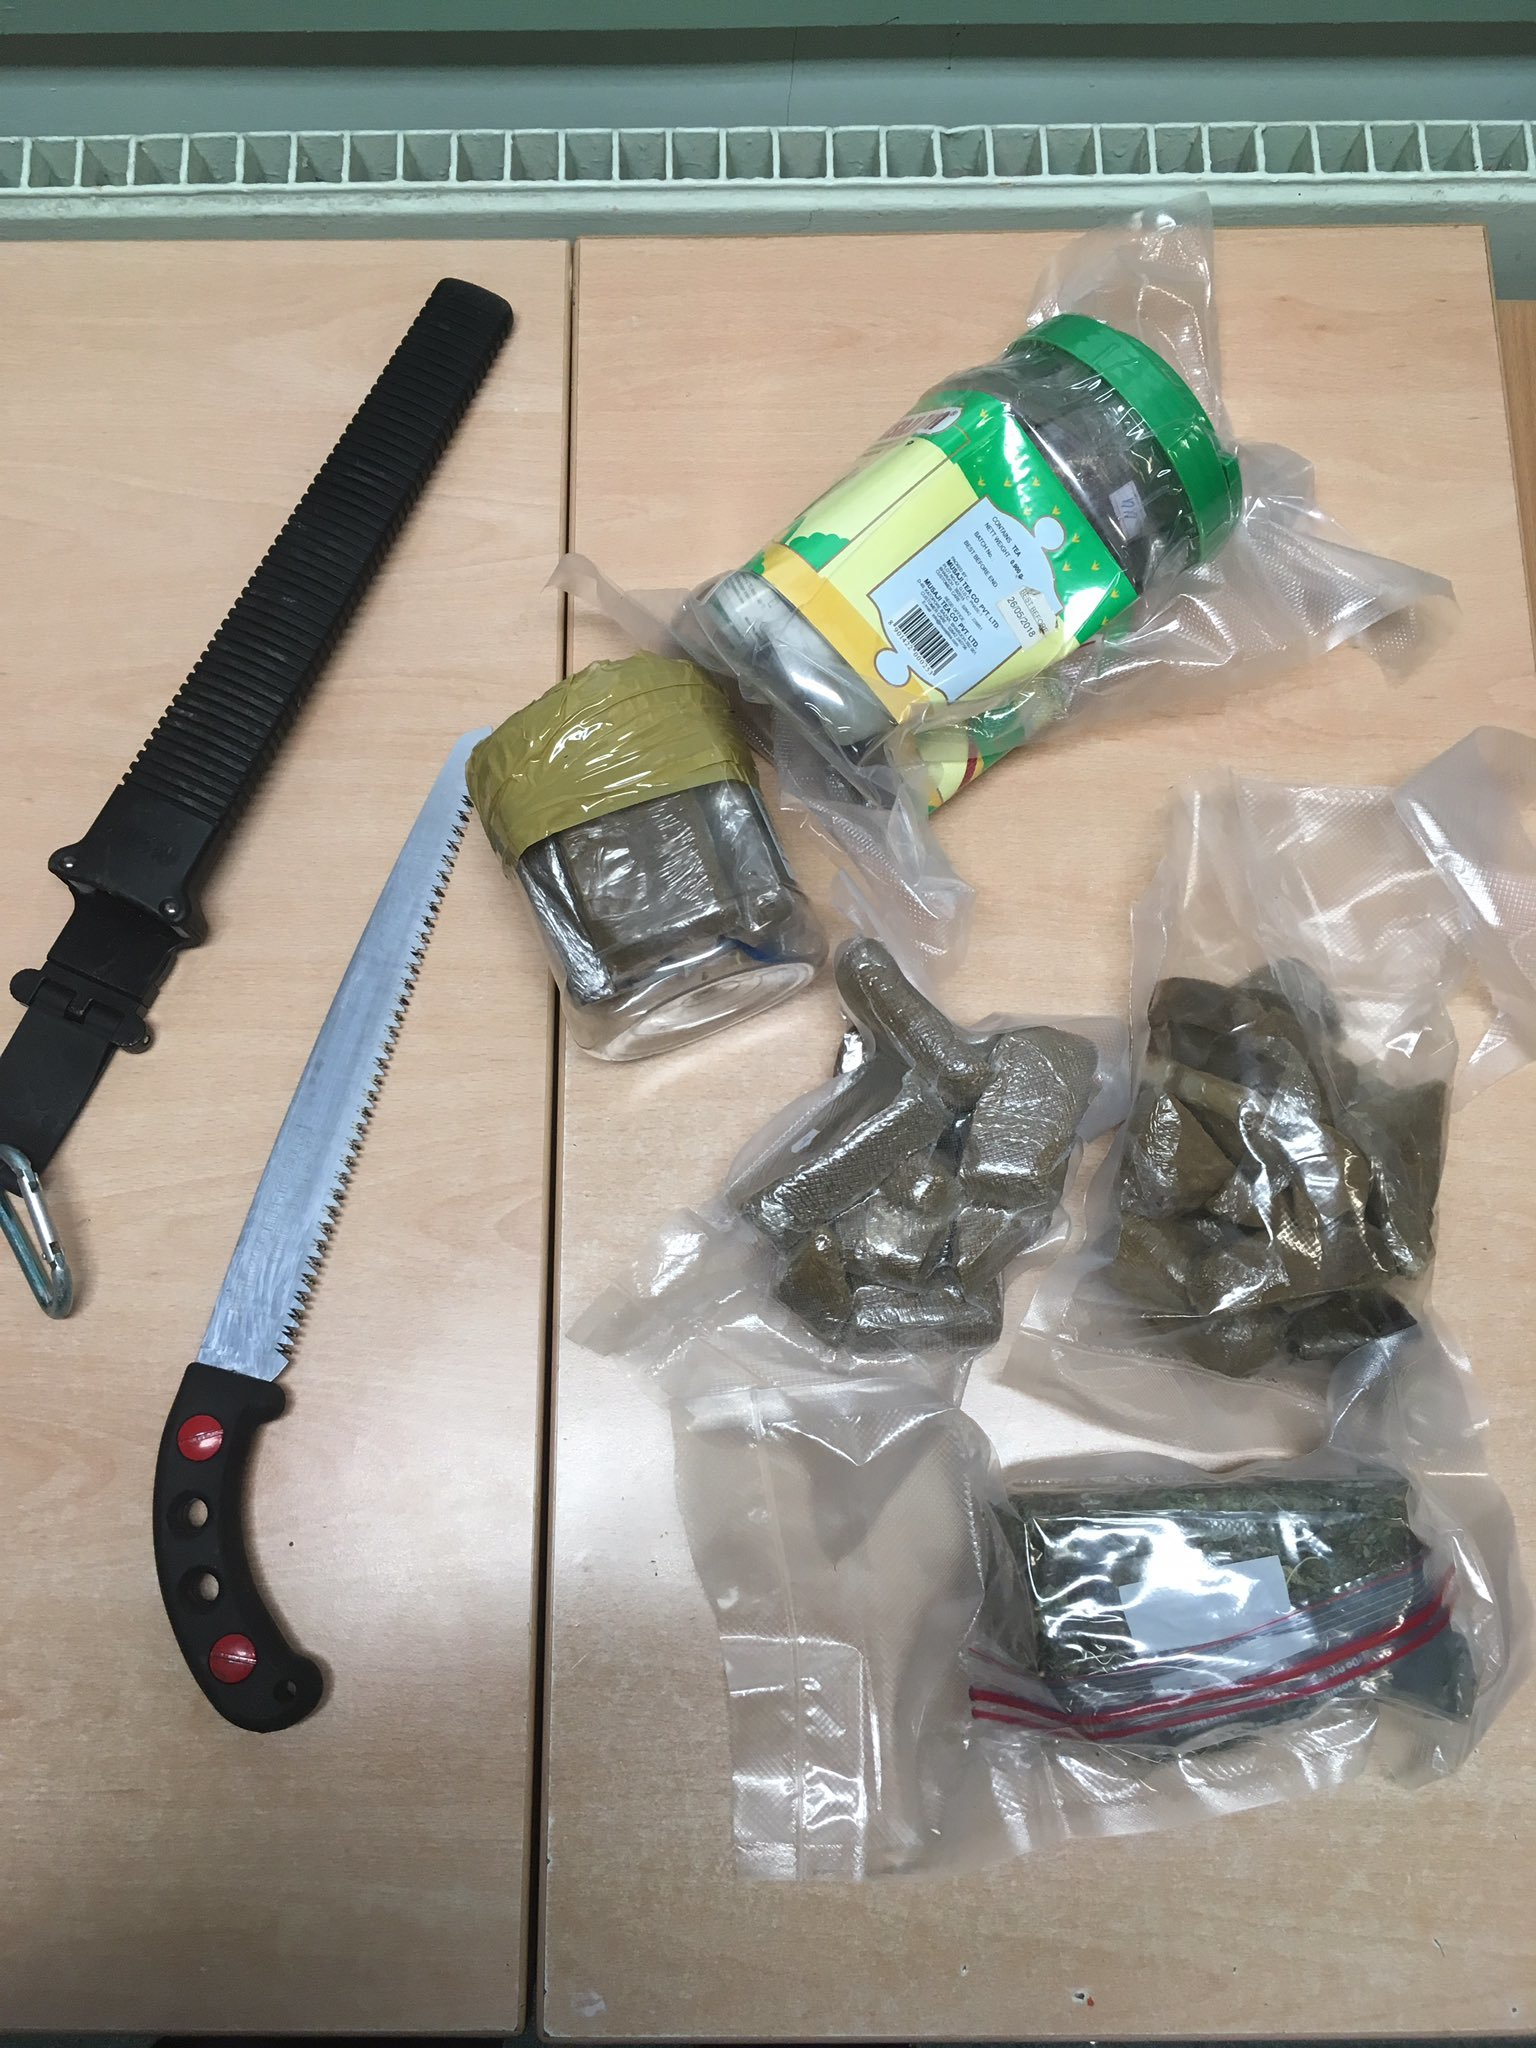 Cannabis and a knife were found in the man's bag by police. Picture: Twitter/@NewtownRPUSGT